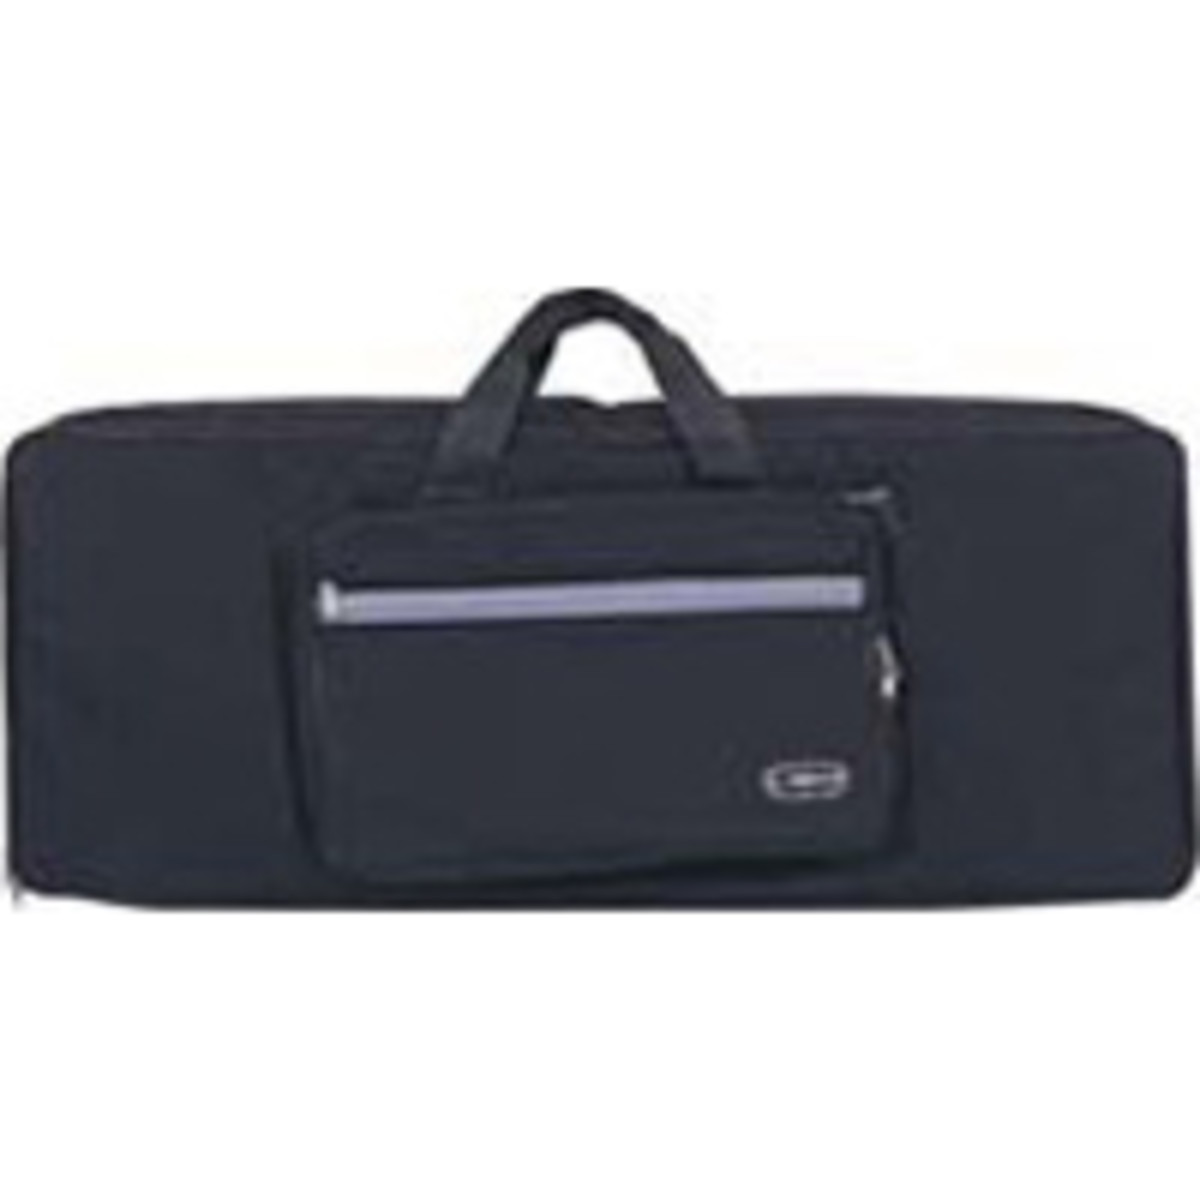 Click to view product details and reviews for Kinsman Kdk1 Keyboard Bag 96x37x15cm.